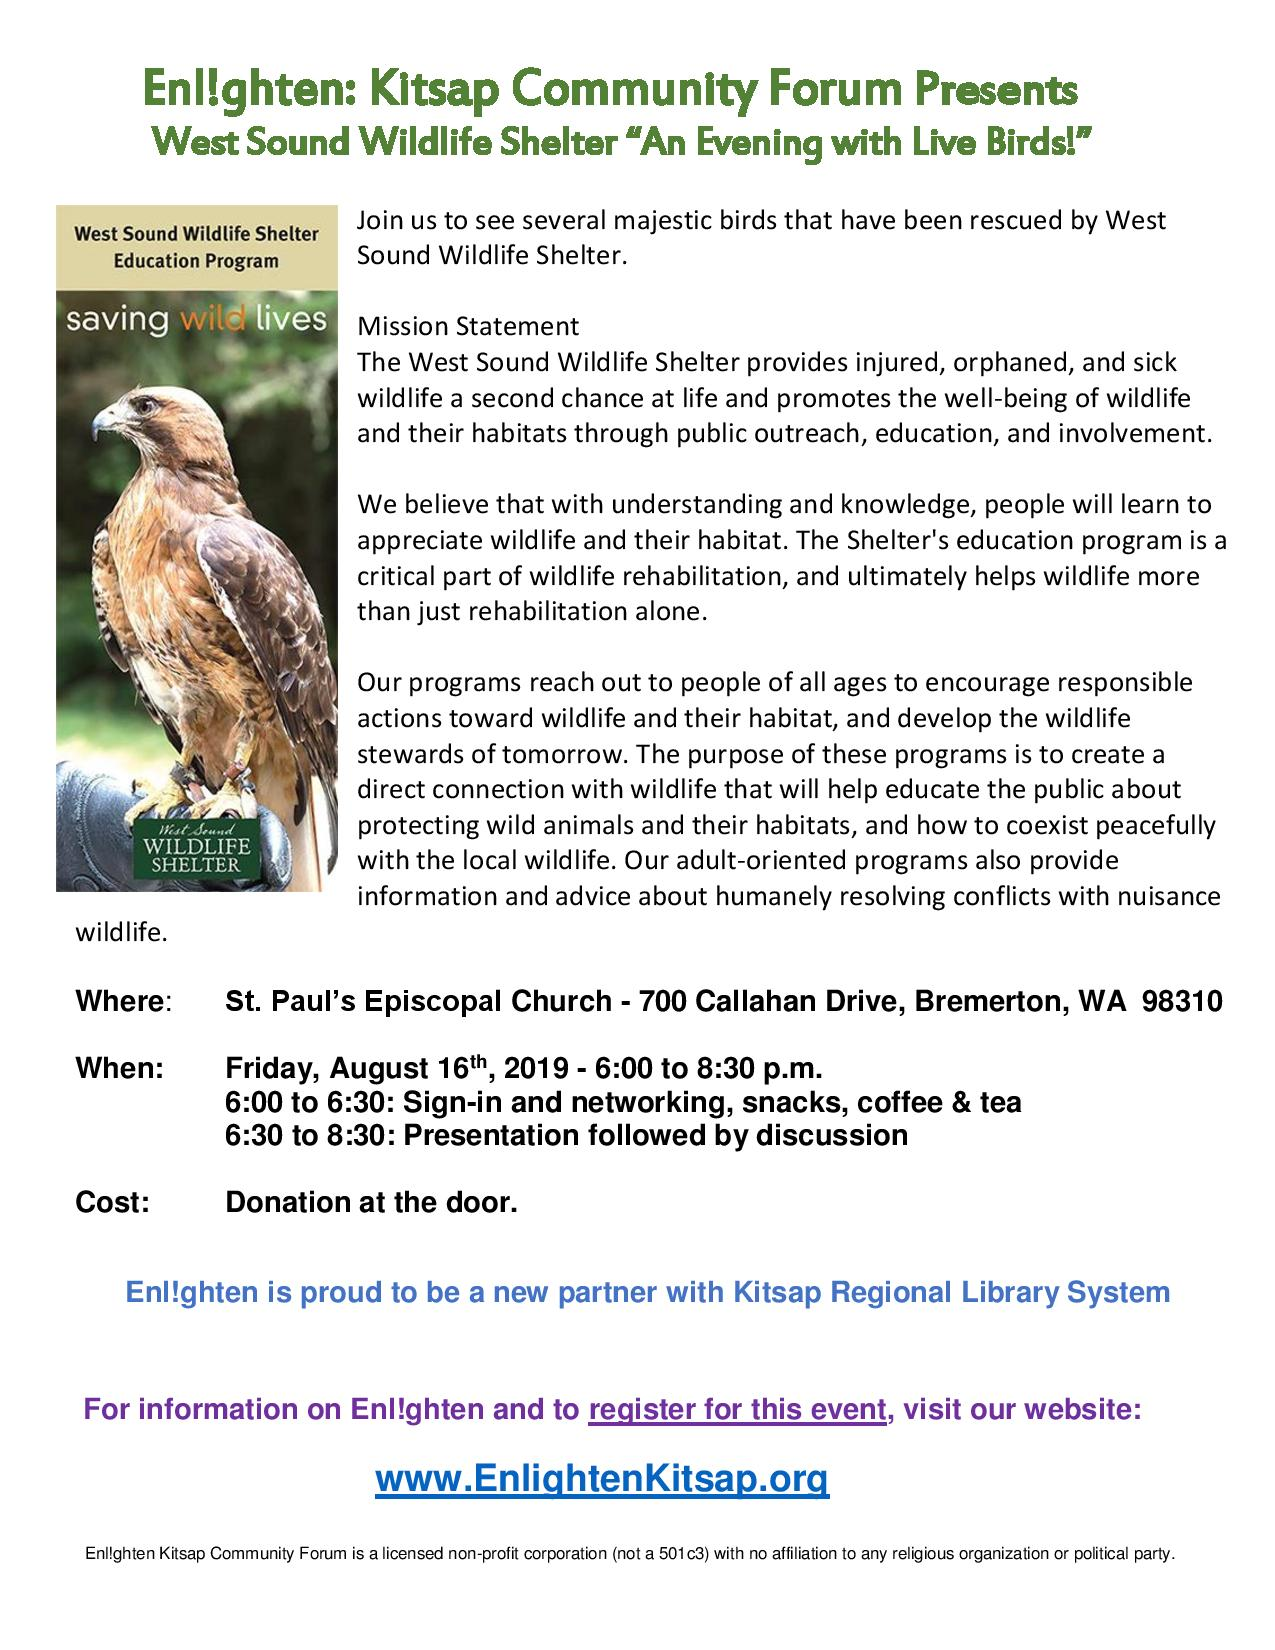 Enlighten Kitsap Community Forum presents West Sound Wildlife Shelter